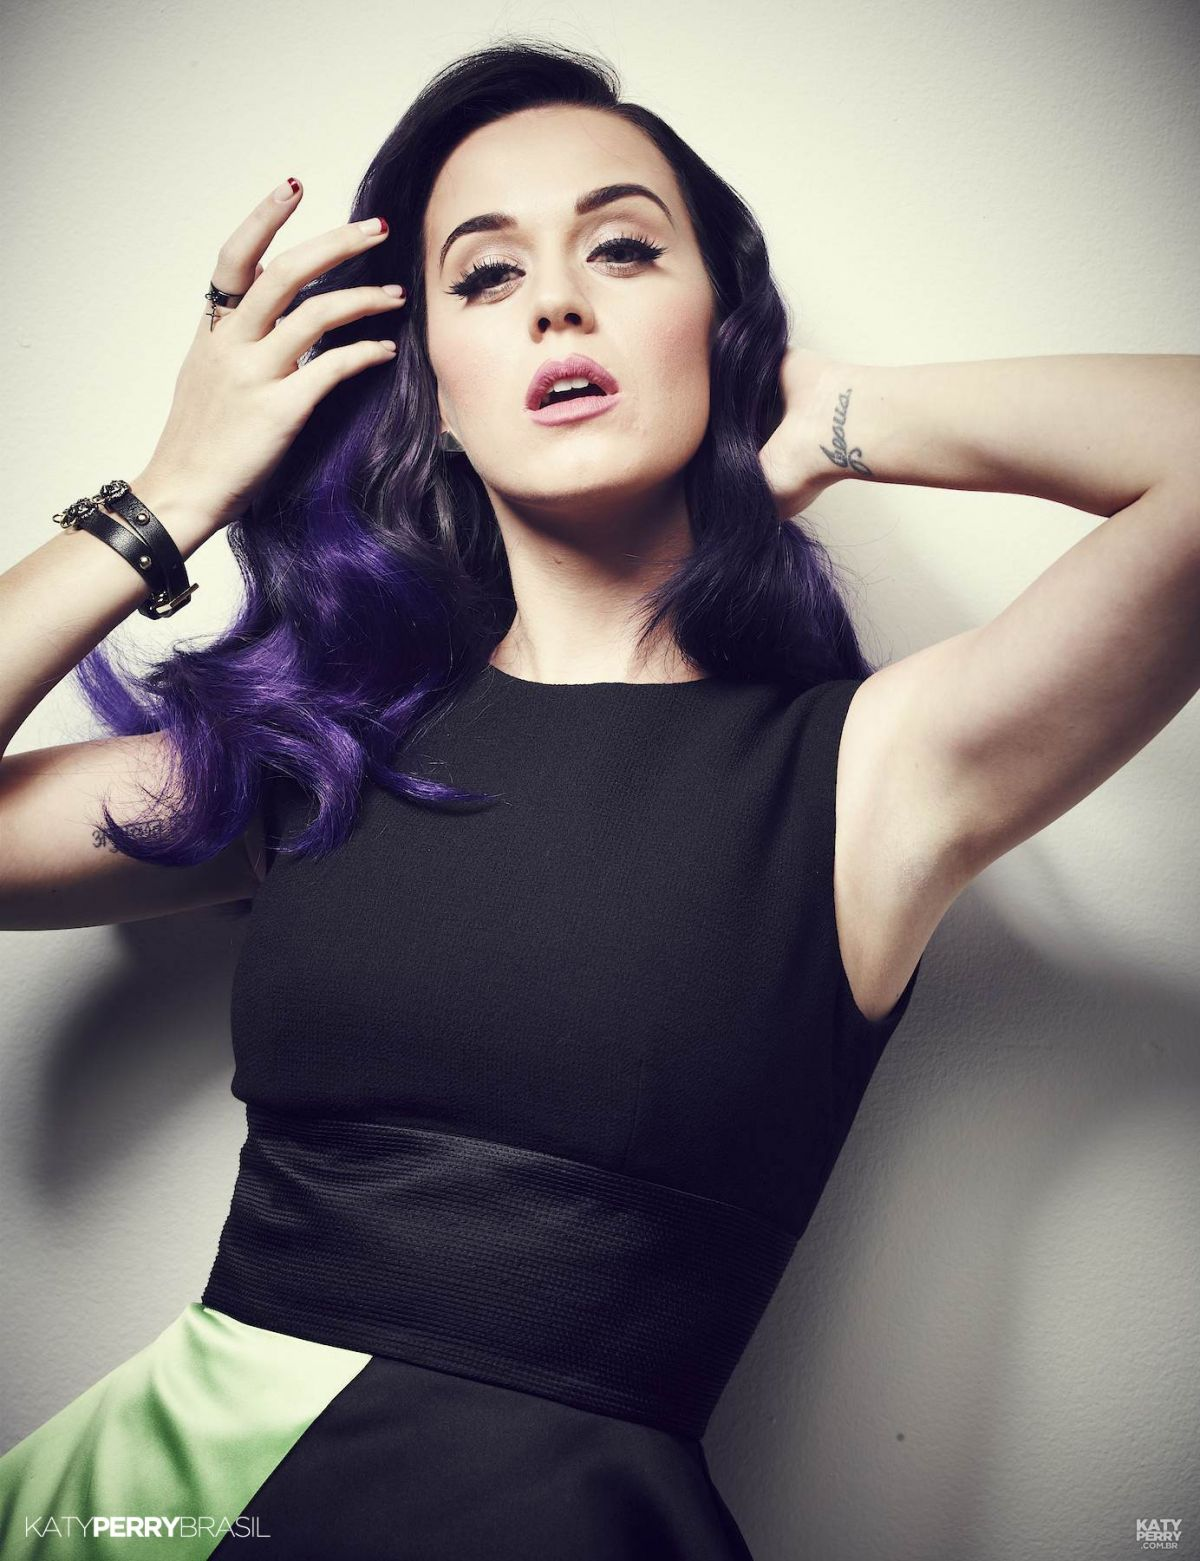 Perry Katy photoshoot pictures images